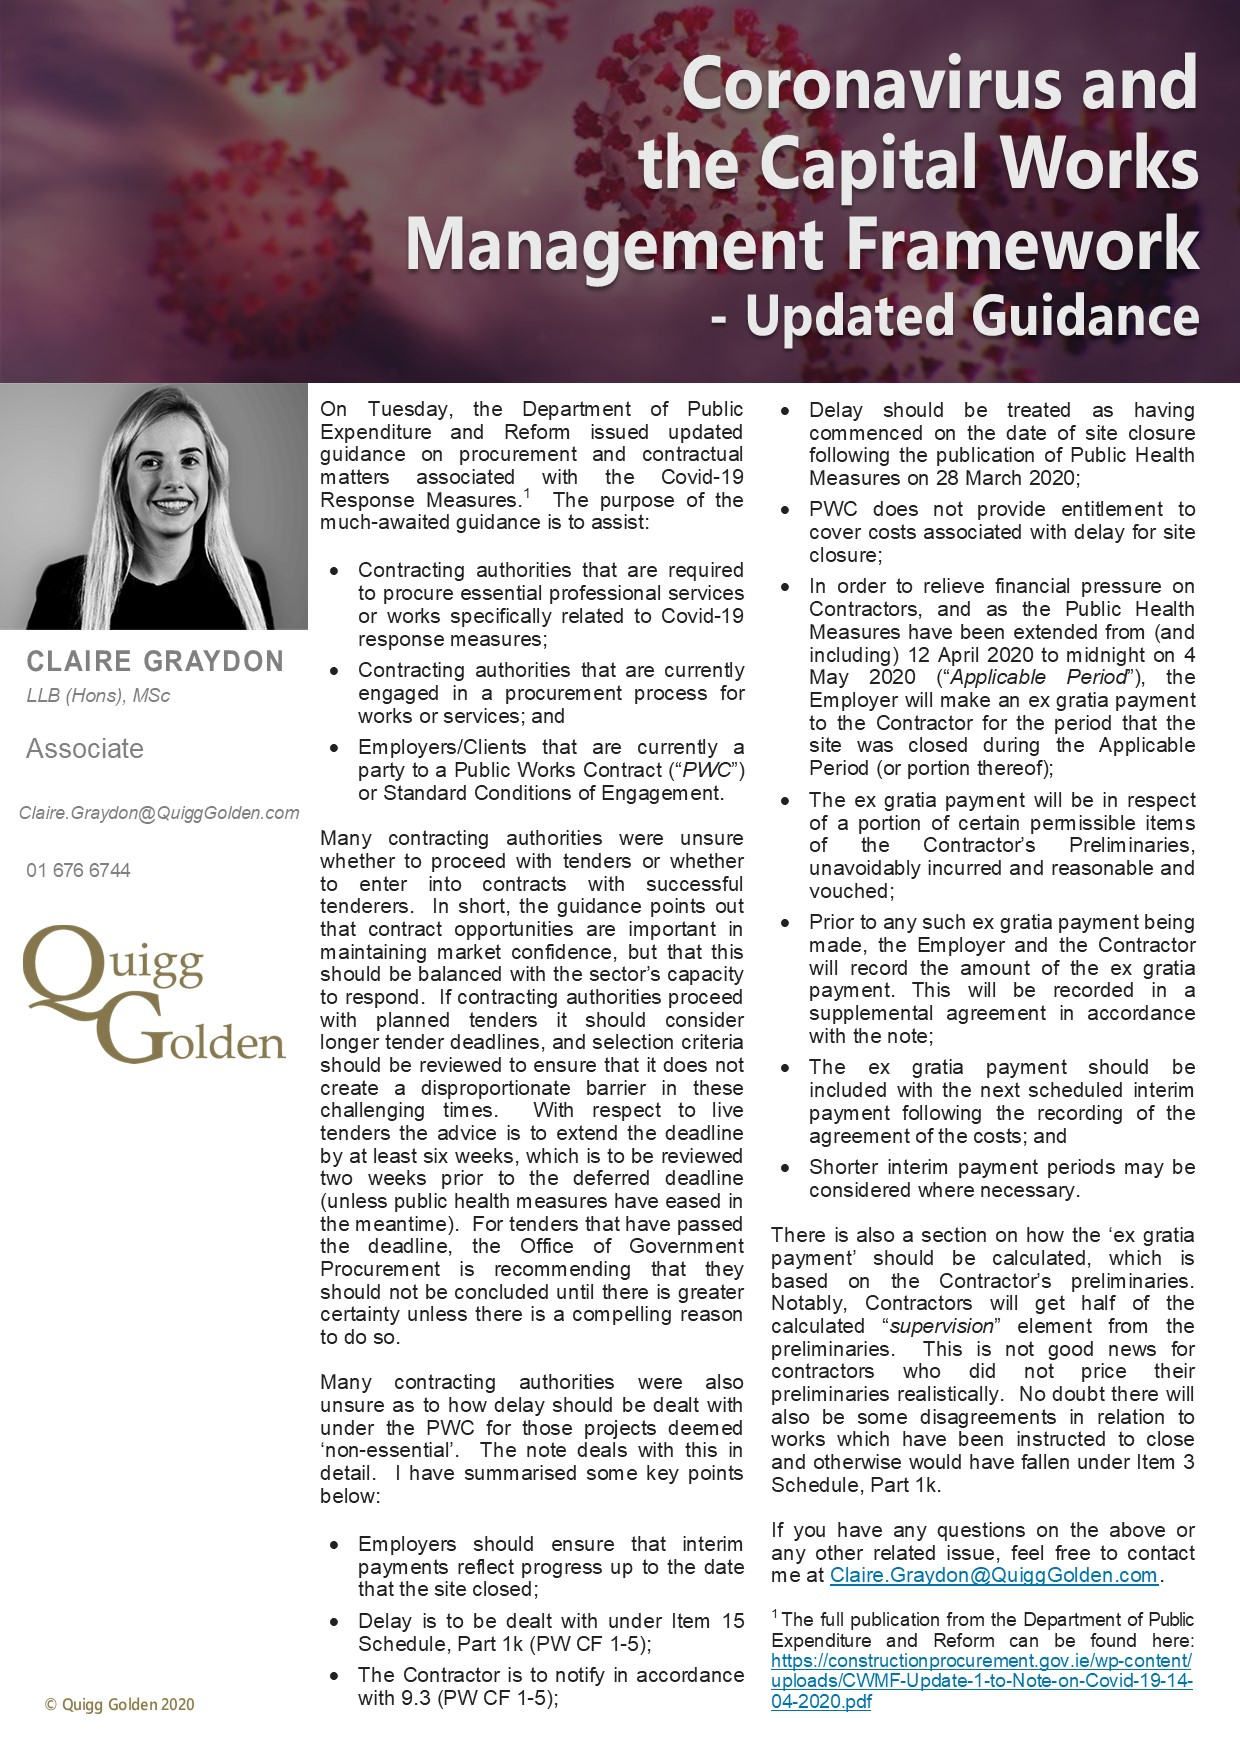 Covid-19 and Capital Works Management Framework Article